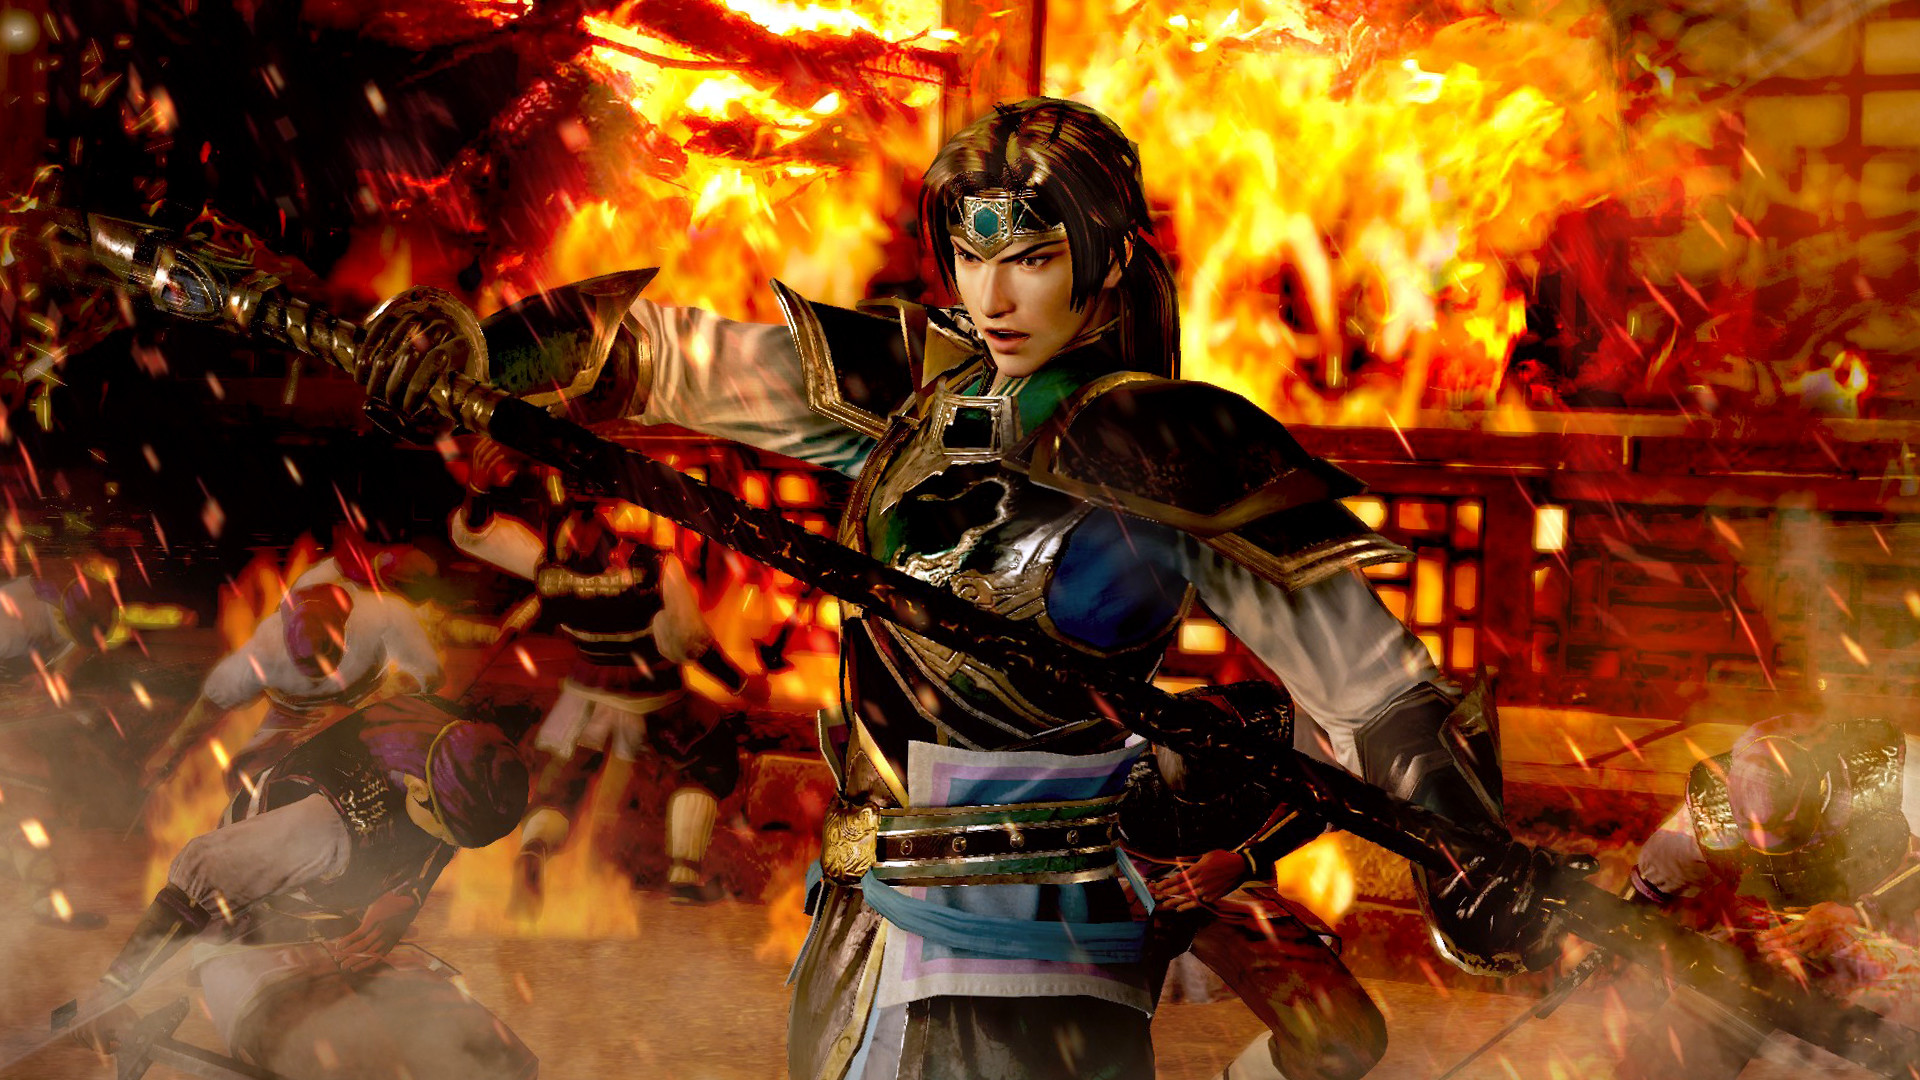 1920x1080 Dynasty Warriors 8 Wallpapers, Widescreen Wallpapers of Dynasty